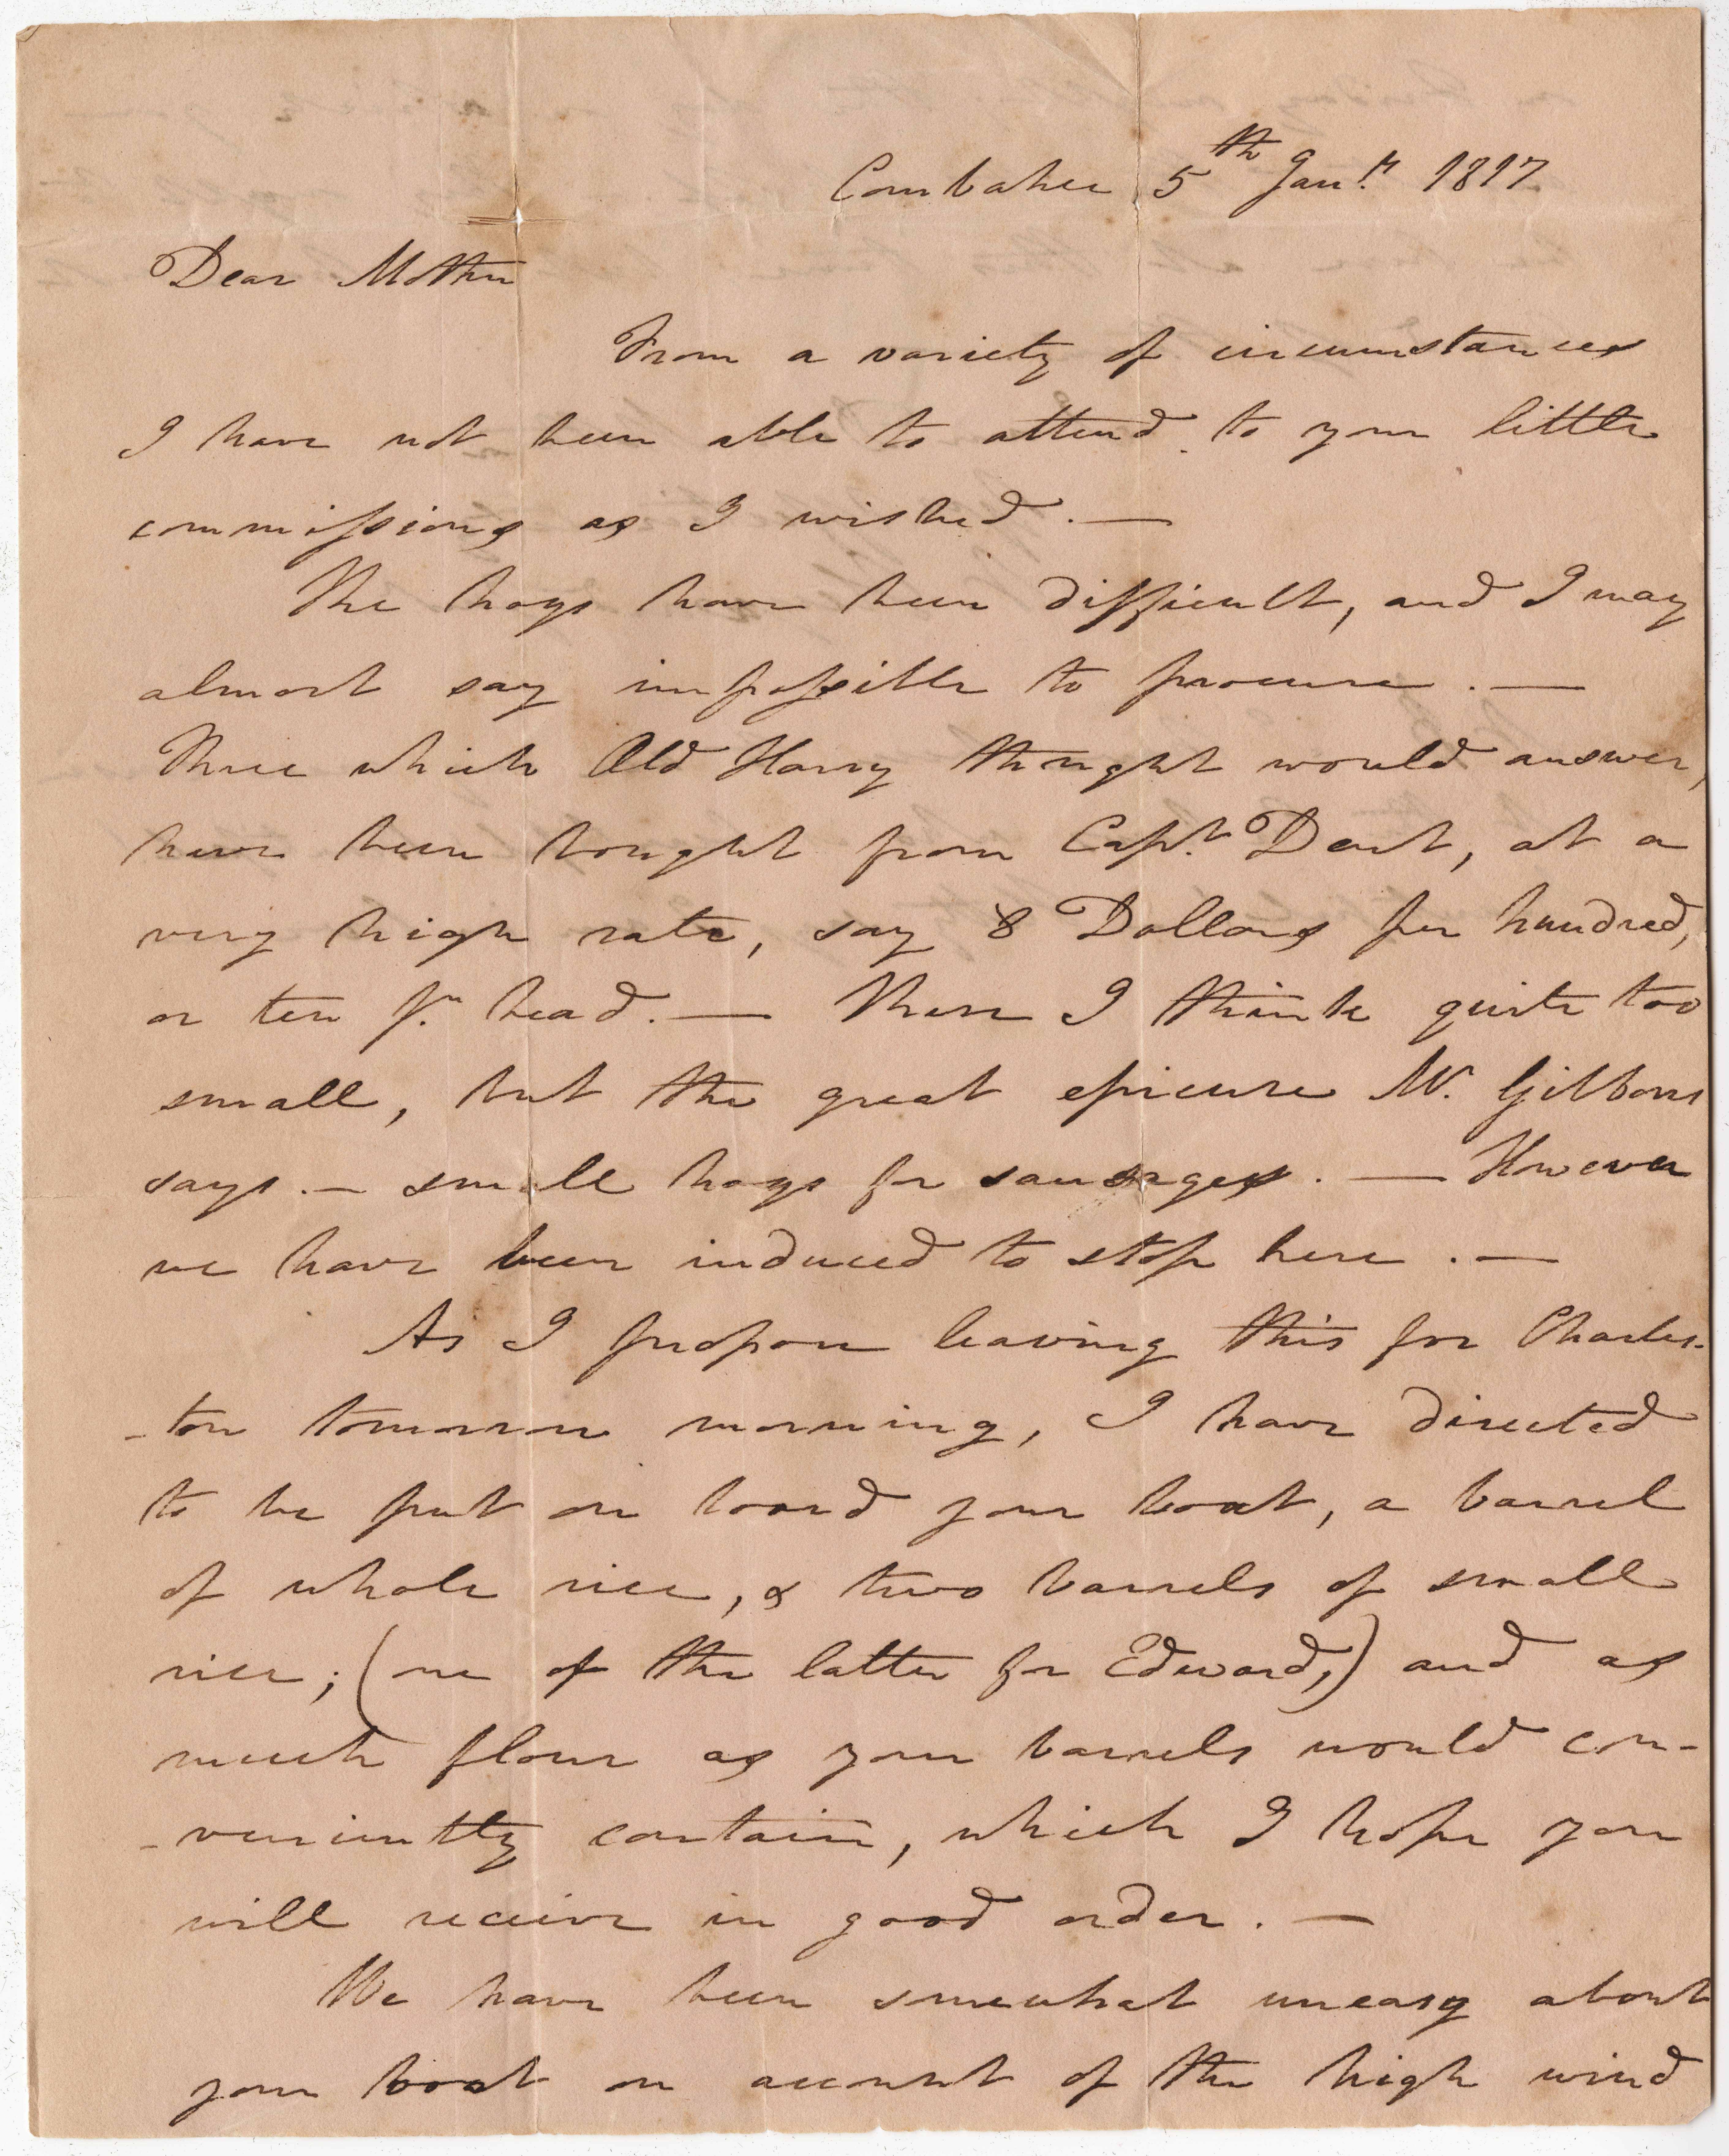 017. Nathaniel Heyward (II) to Mother-in-Law -- January 5, 1817